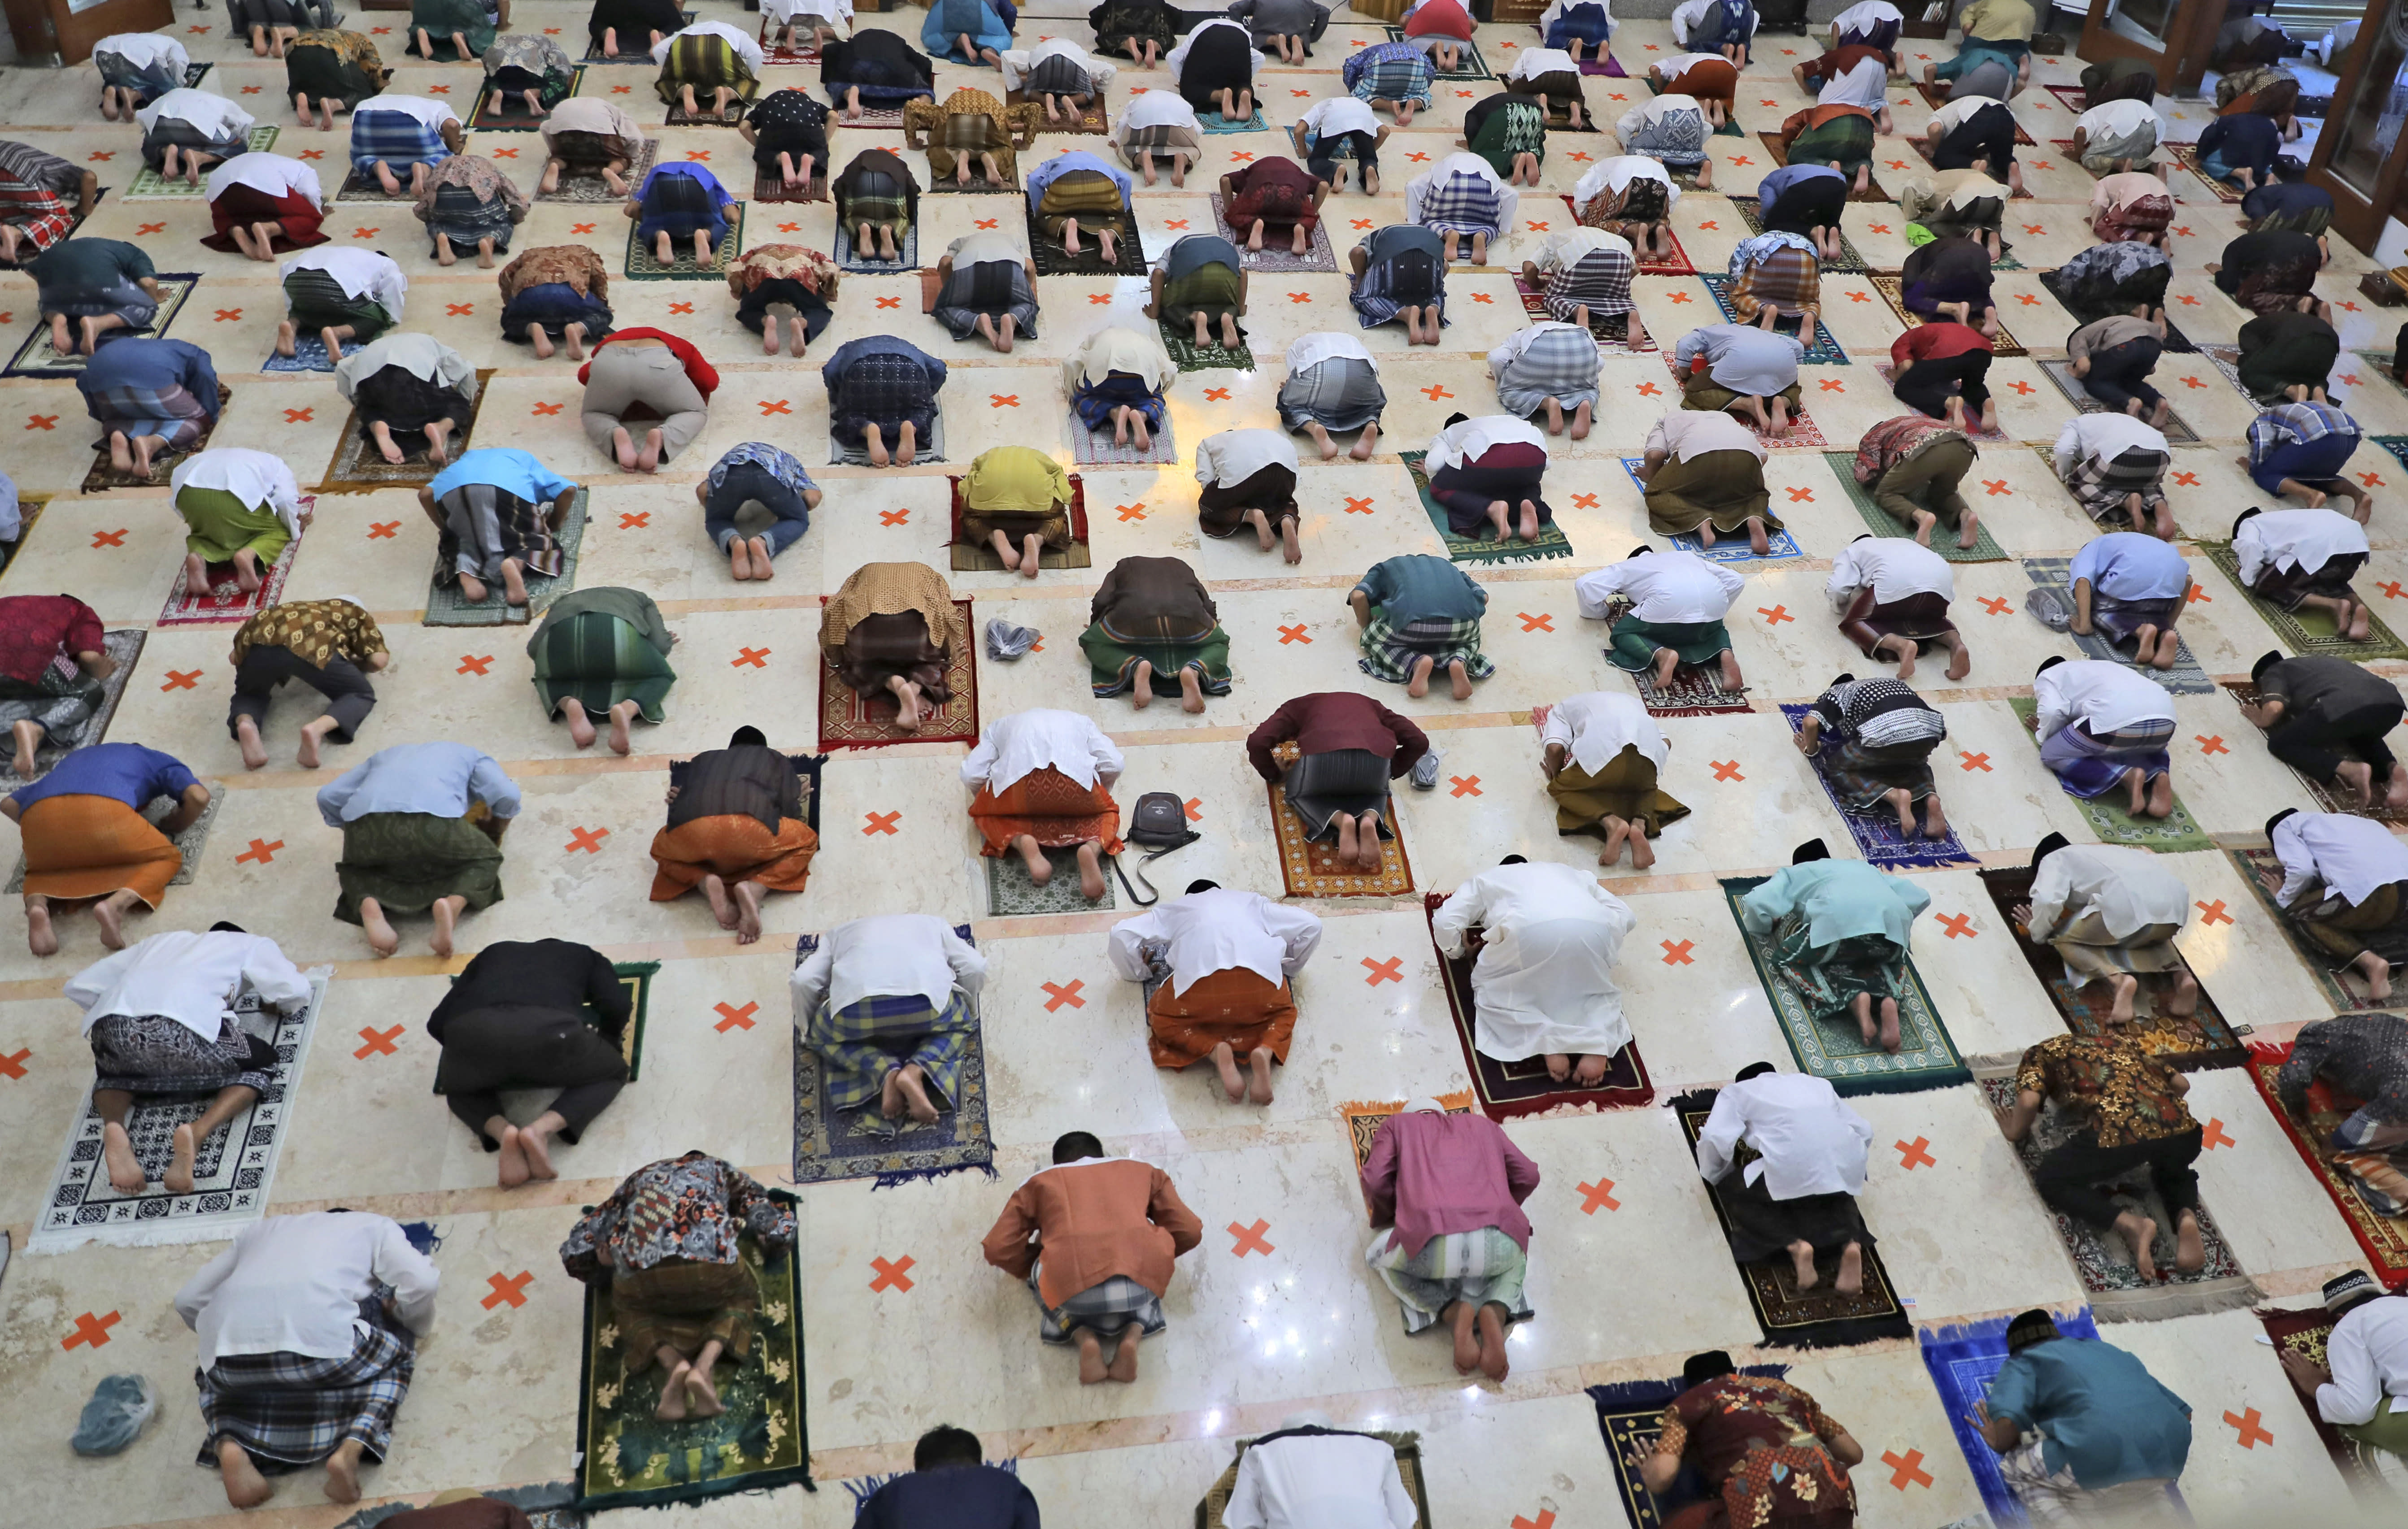 Indonesian Muslims pray spaced apart as they practice social distancing to curb the spread of the new coronavirus during an Eid al-Fitr prayer marking the end of the holy fasting month of Ramadan in Sidoarjo, East Java, Indonesia, Sunday, May 24, 2020. Millions of people in the world's largest Muslim nation are marking a muted and gloomy religious festival of Eid al-Fitr, the end of the fasting month of Ramadan _ a usually joyous three-day celebration that has been significantly toned down as coronavirus cases soar. (AP Photo/Trisnadi)